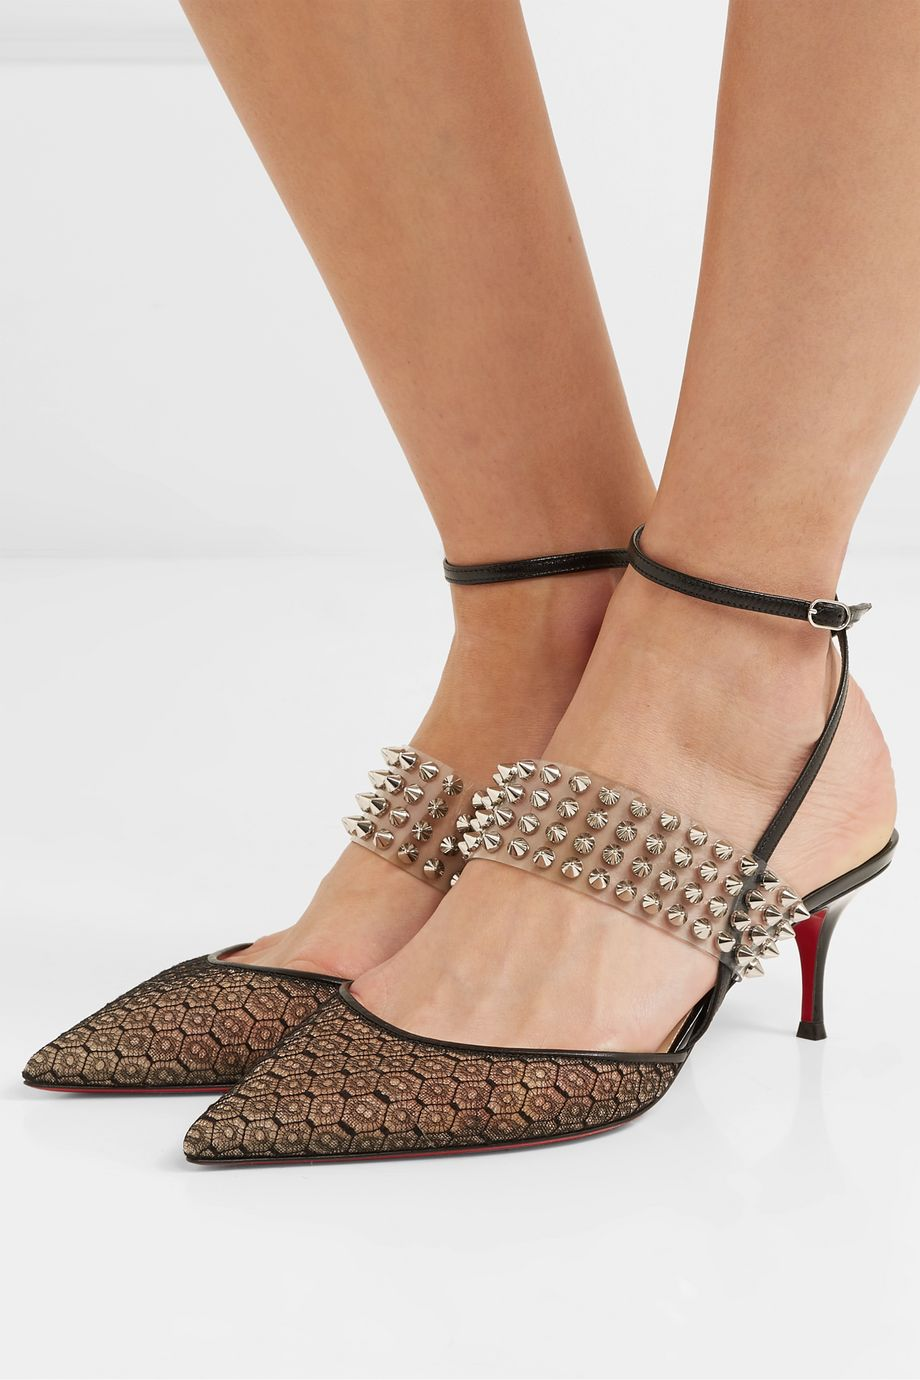 Christian Louboutin Levita Rete 55 spiked PVC, leather and lace pumps